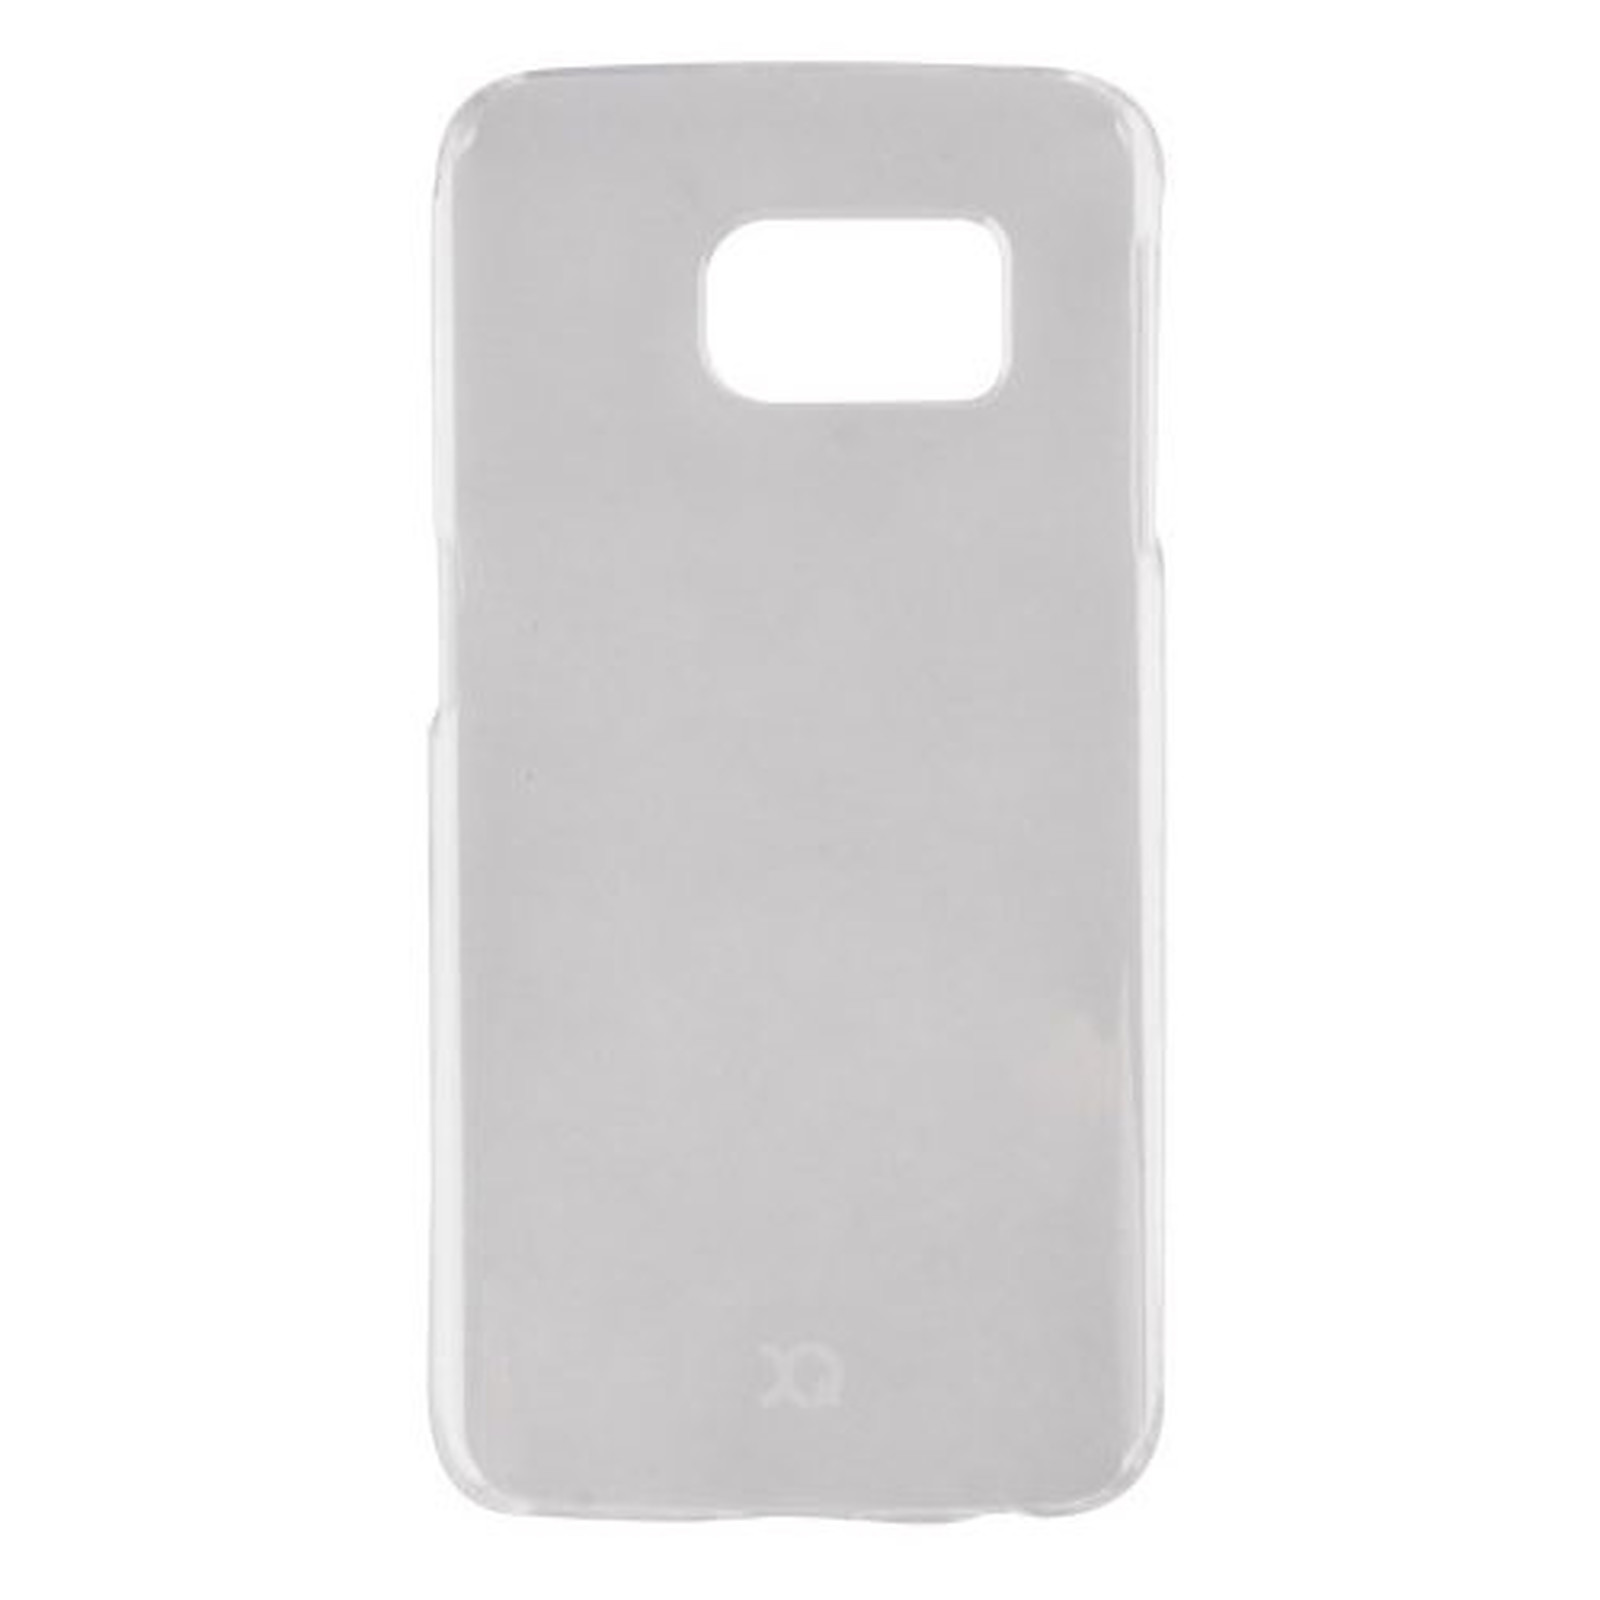 xqisit Coque iPlate Glossy Samsung Galaxy S3 Mini